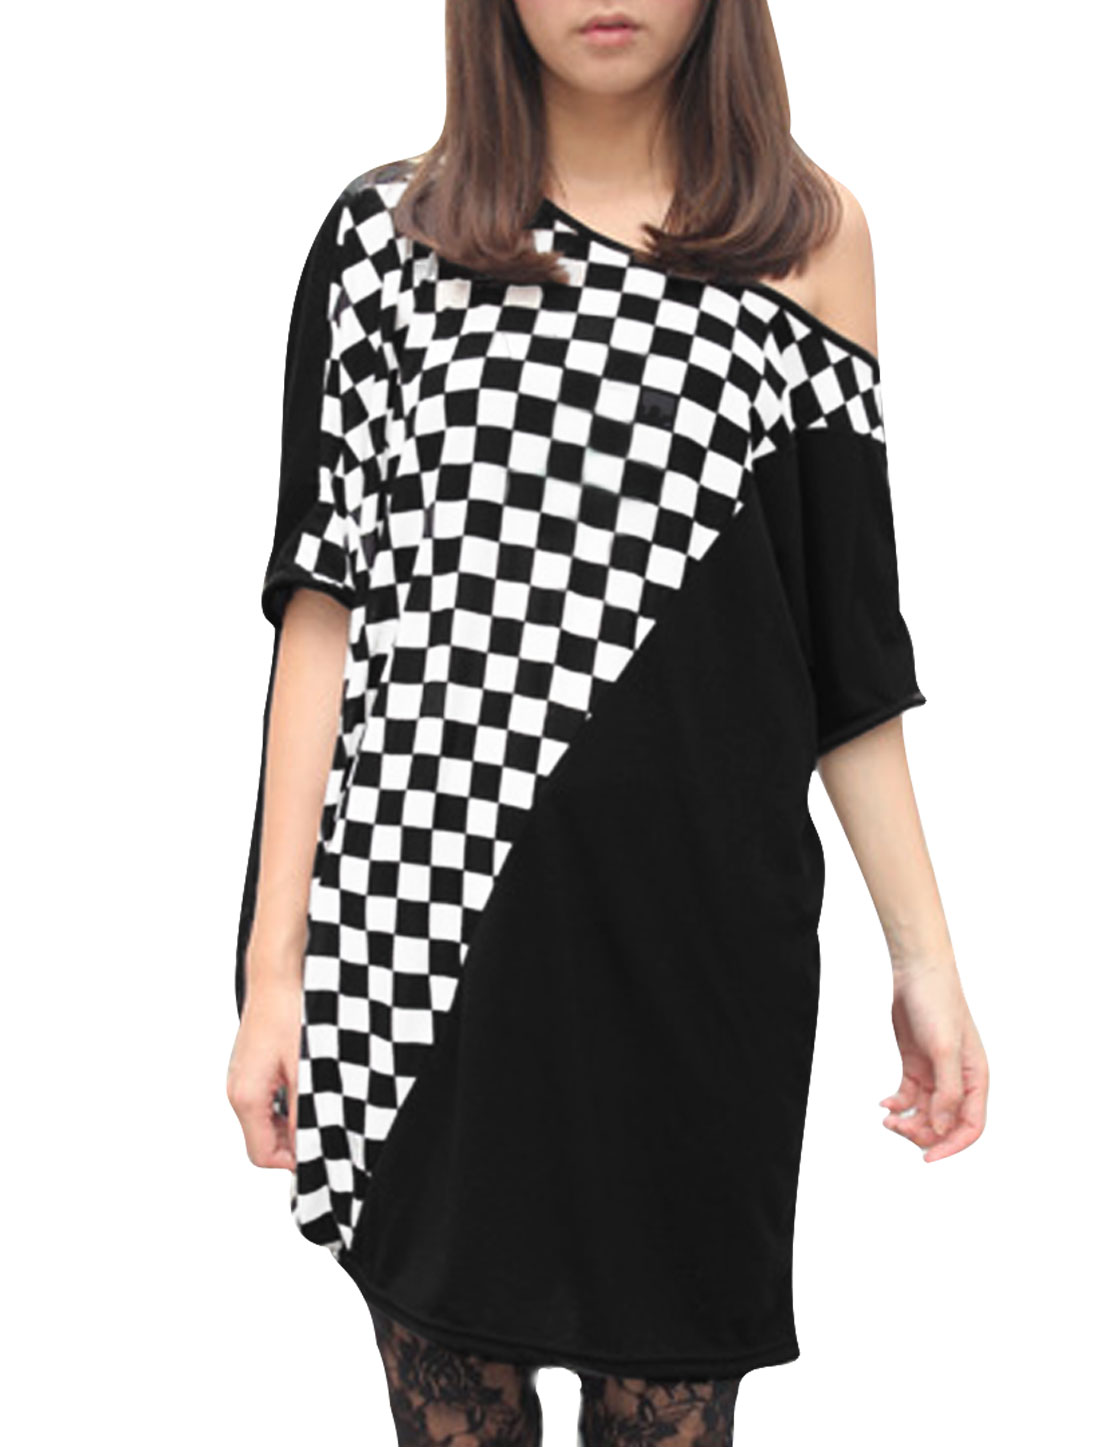 Women Round Neck Batwing Sleeve Plaids Prints Casual Tunic Shirt Black L